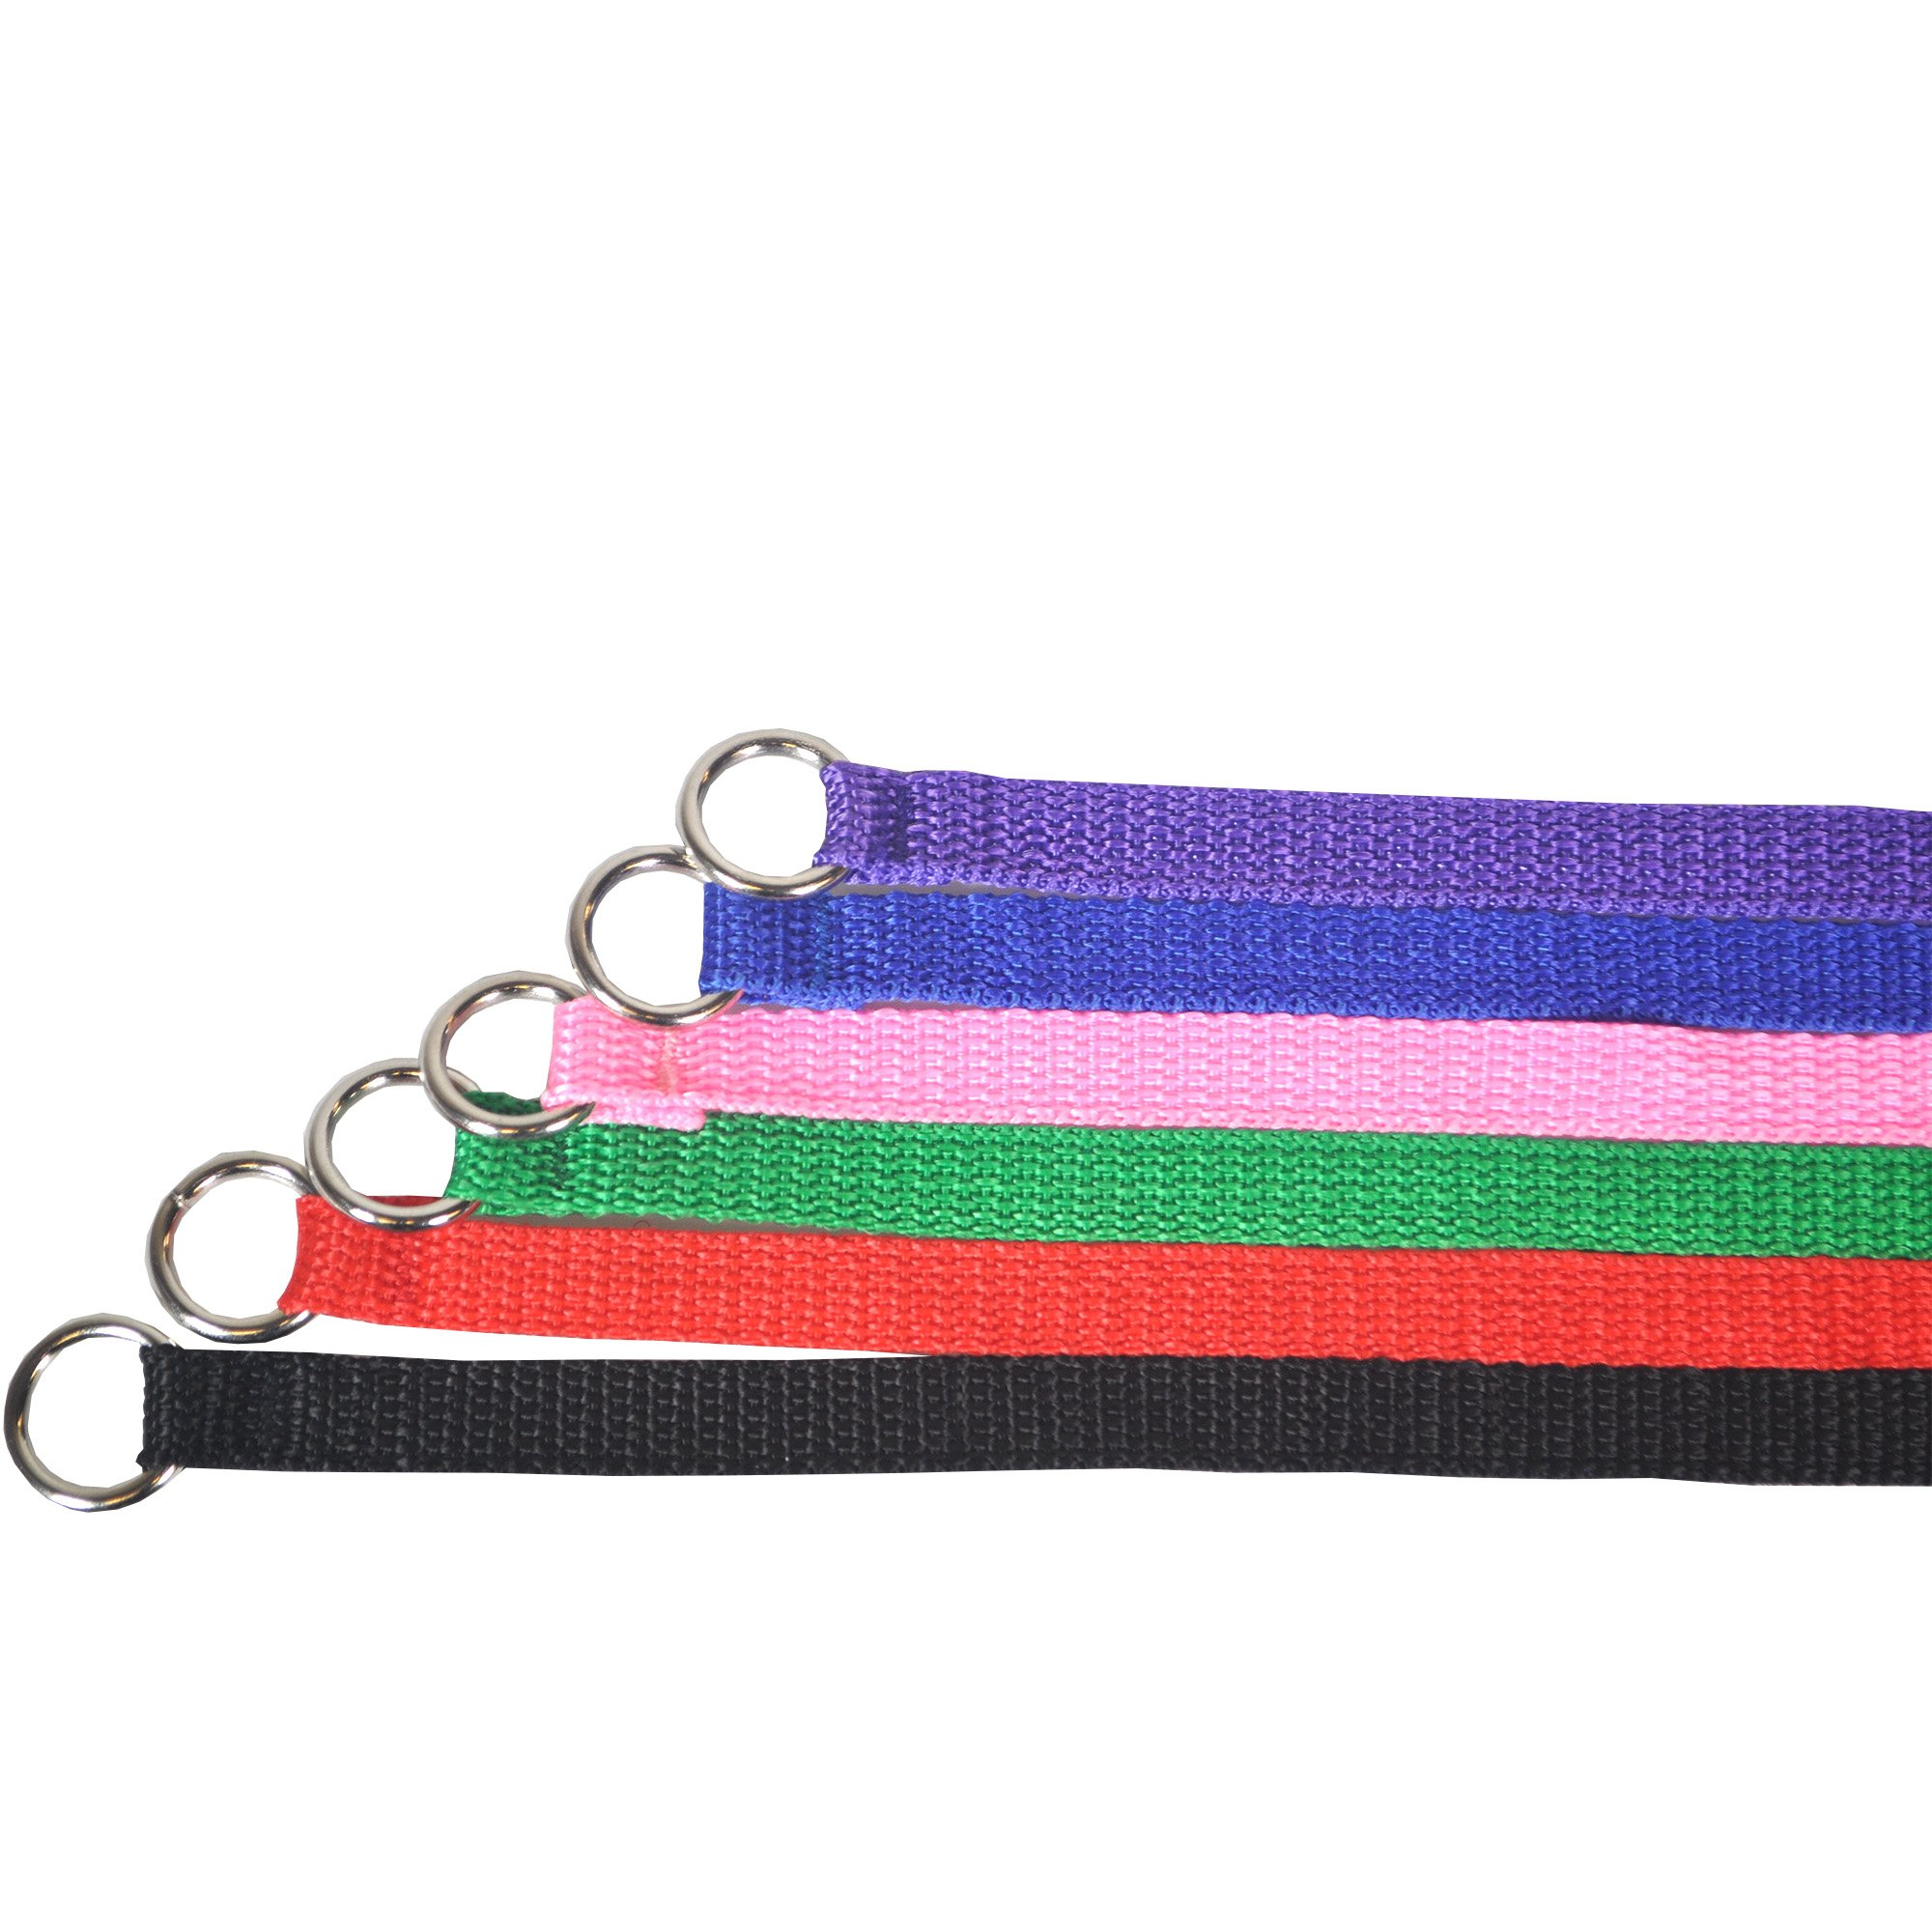 Downtown Pet Supply Slip Leads, Kennel Leads with O Ring for Dog Pet Animal Control Grooming, Shelter, Rescues, Vet, Veterinarian, Doggy Daycare - 4 Foot Length x 1/2 inch Width (120 Pack) by Downtown Pet Supply